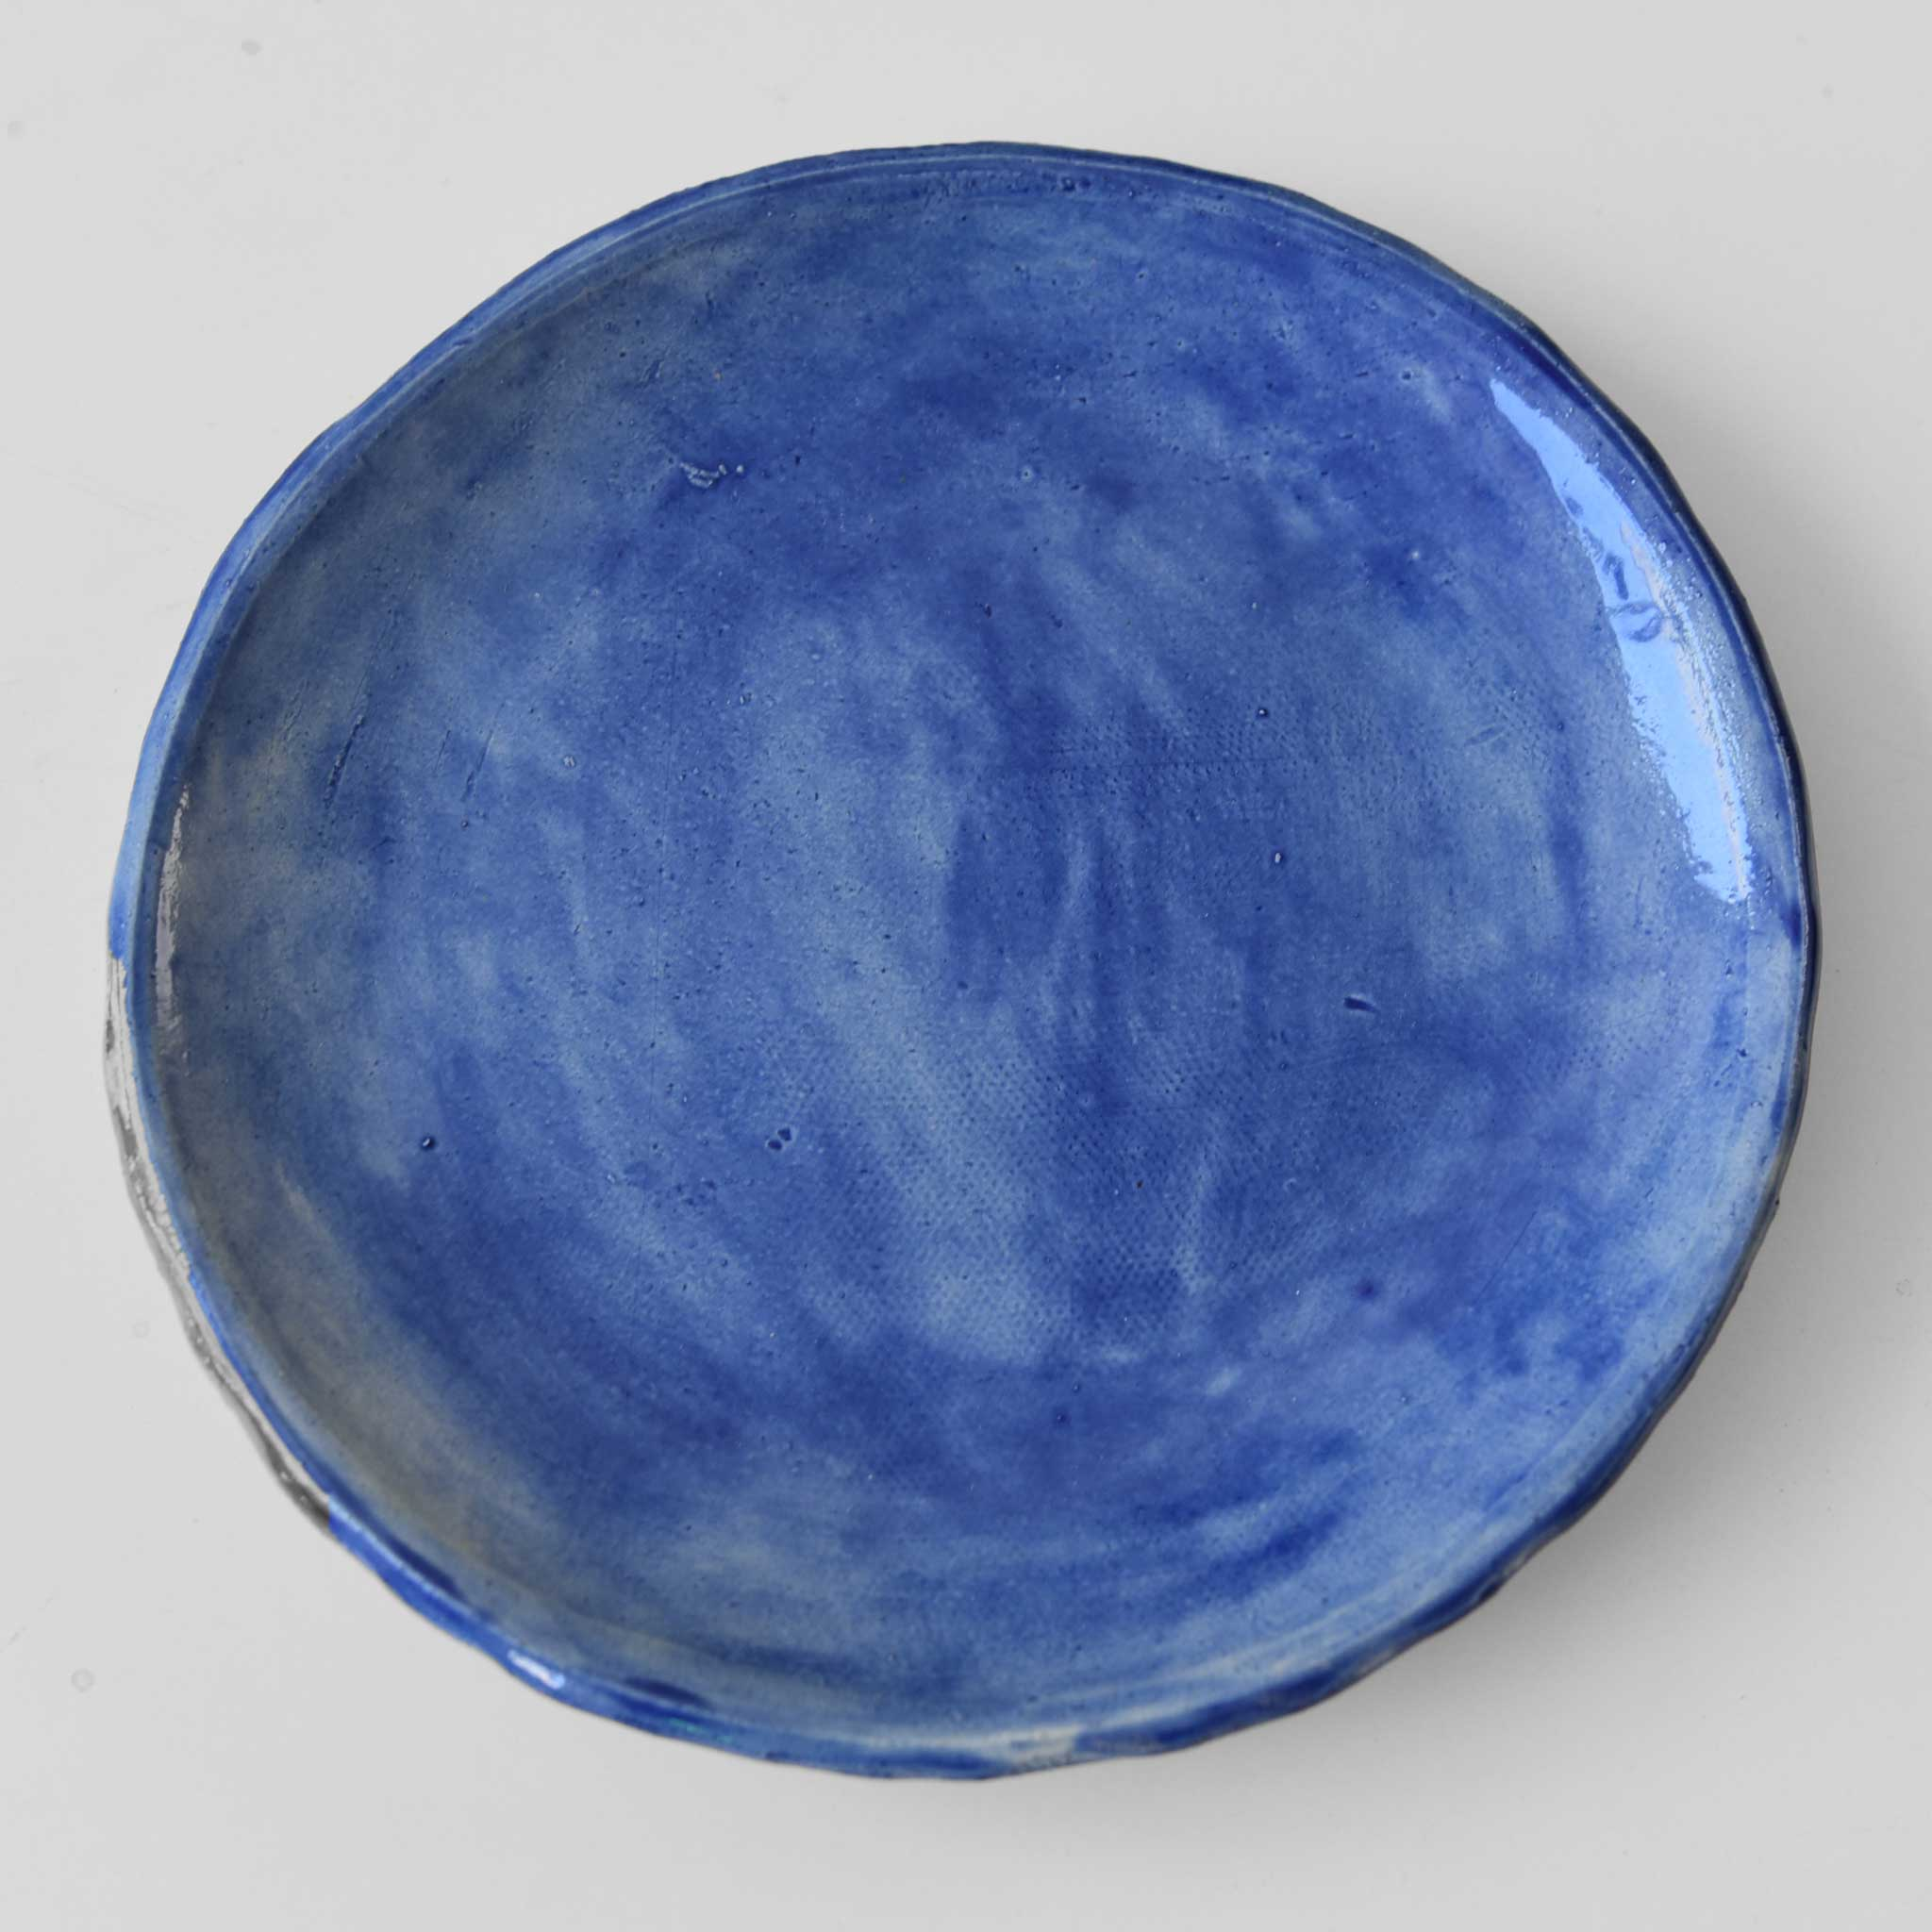 Large Blue Ceramic Plate